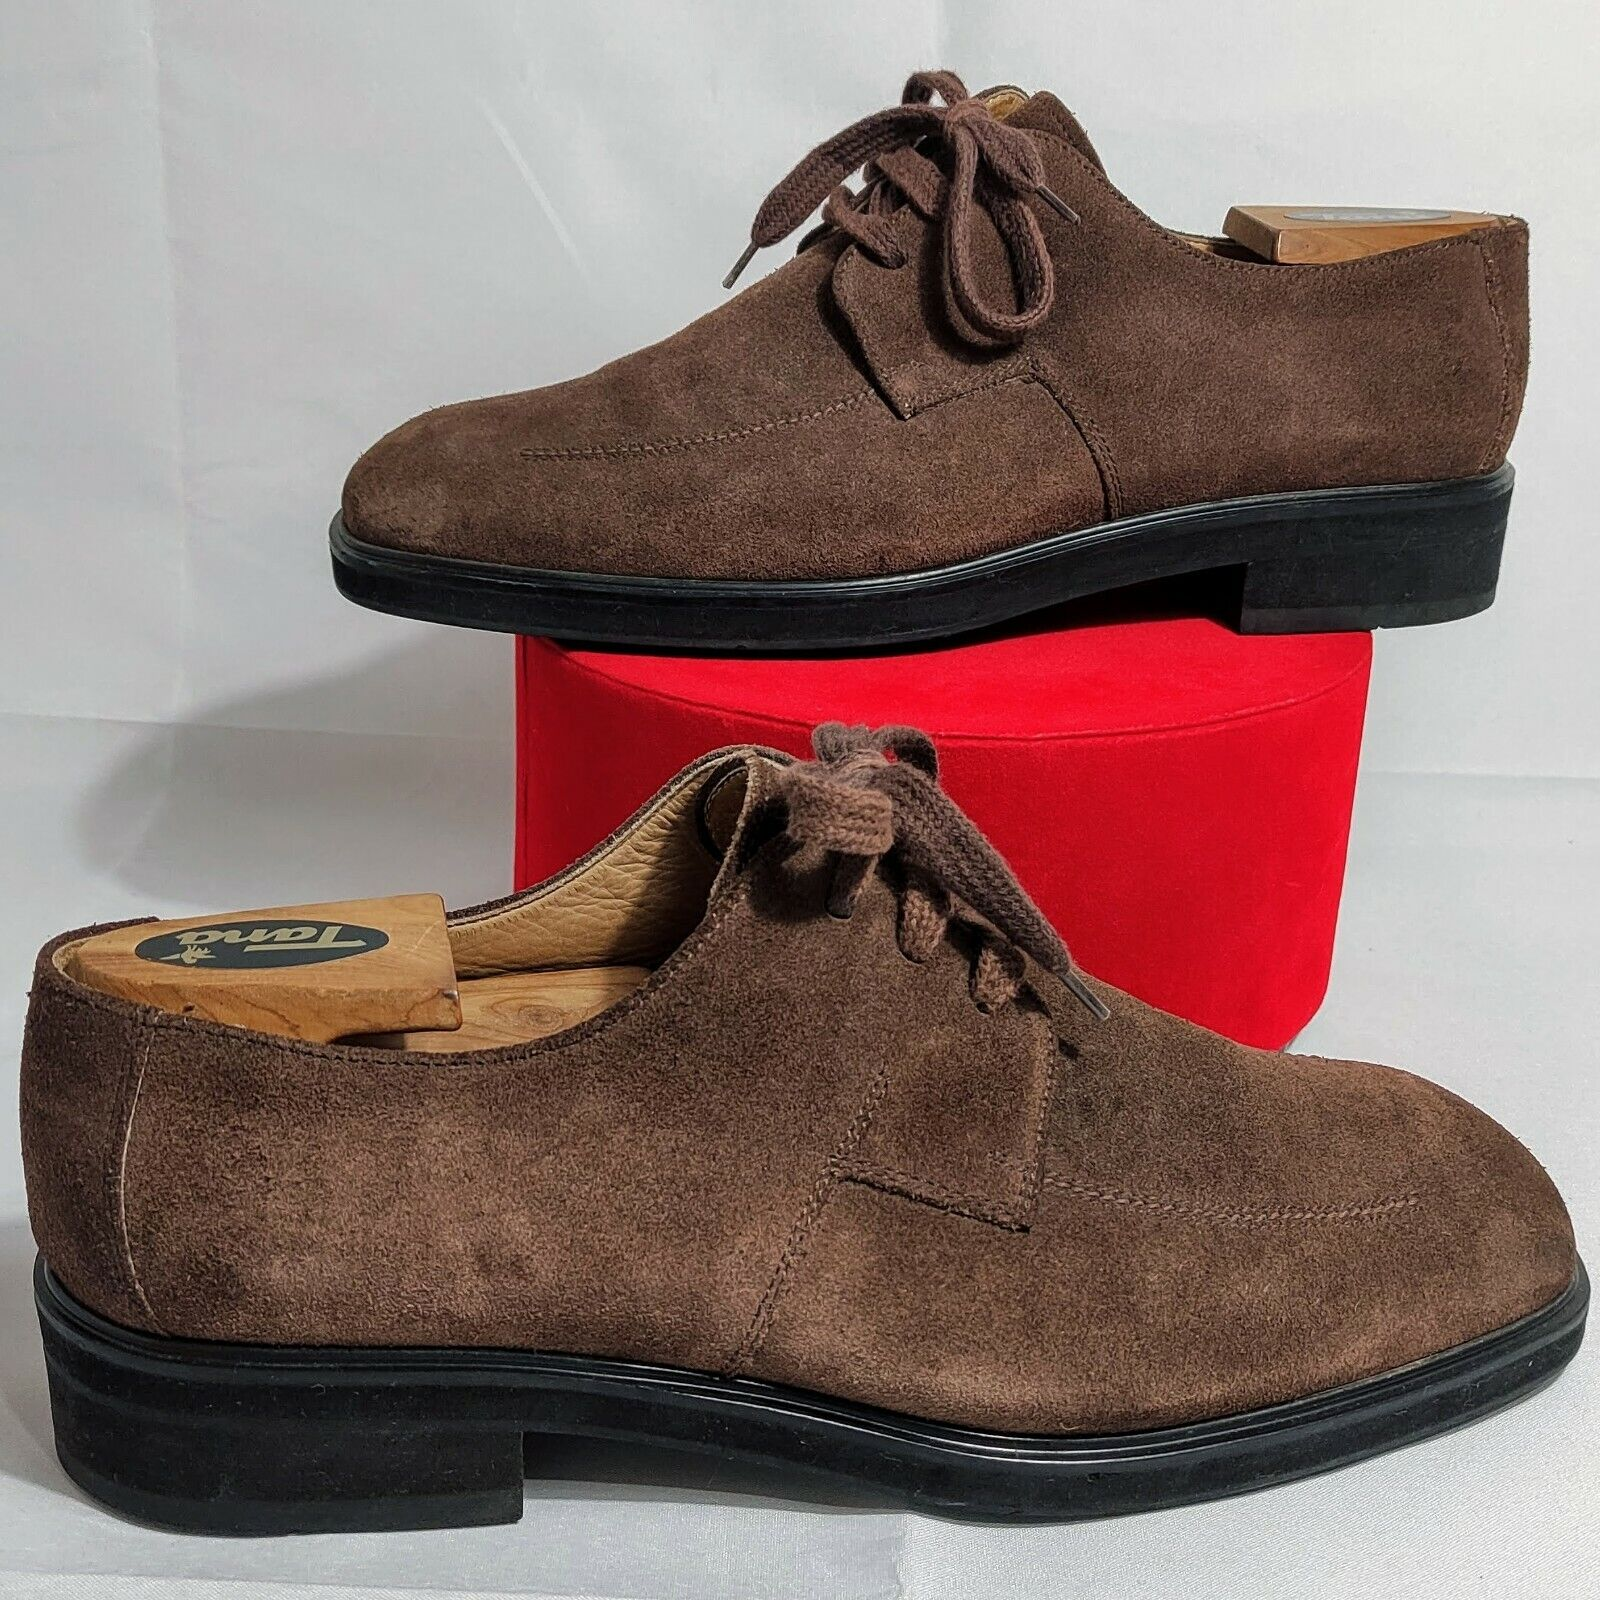 BALLY Suisse GRIOT Oxpord Brown Leather Suede Shoes Size 9.5